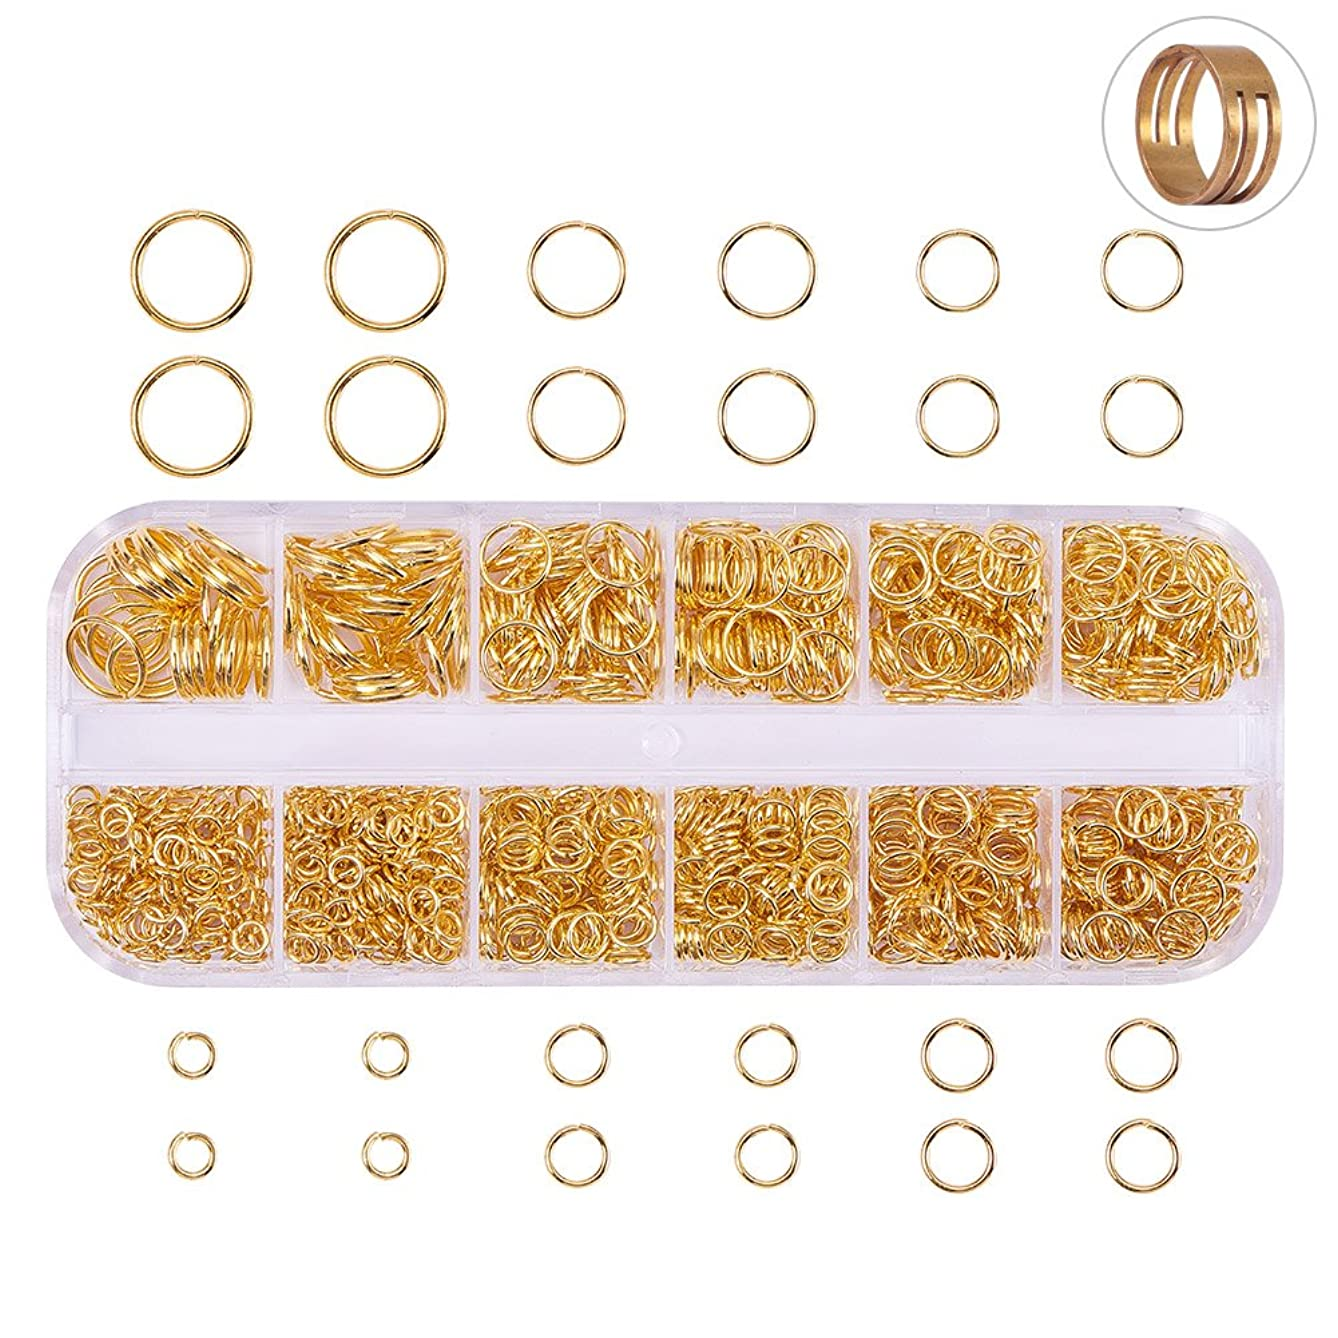 PH PandaHall 800 Pcs Outer Diameter 4-10mm Open Jump Rings for Jewelry Making Gold